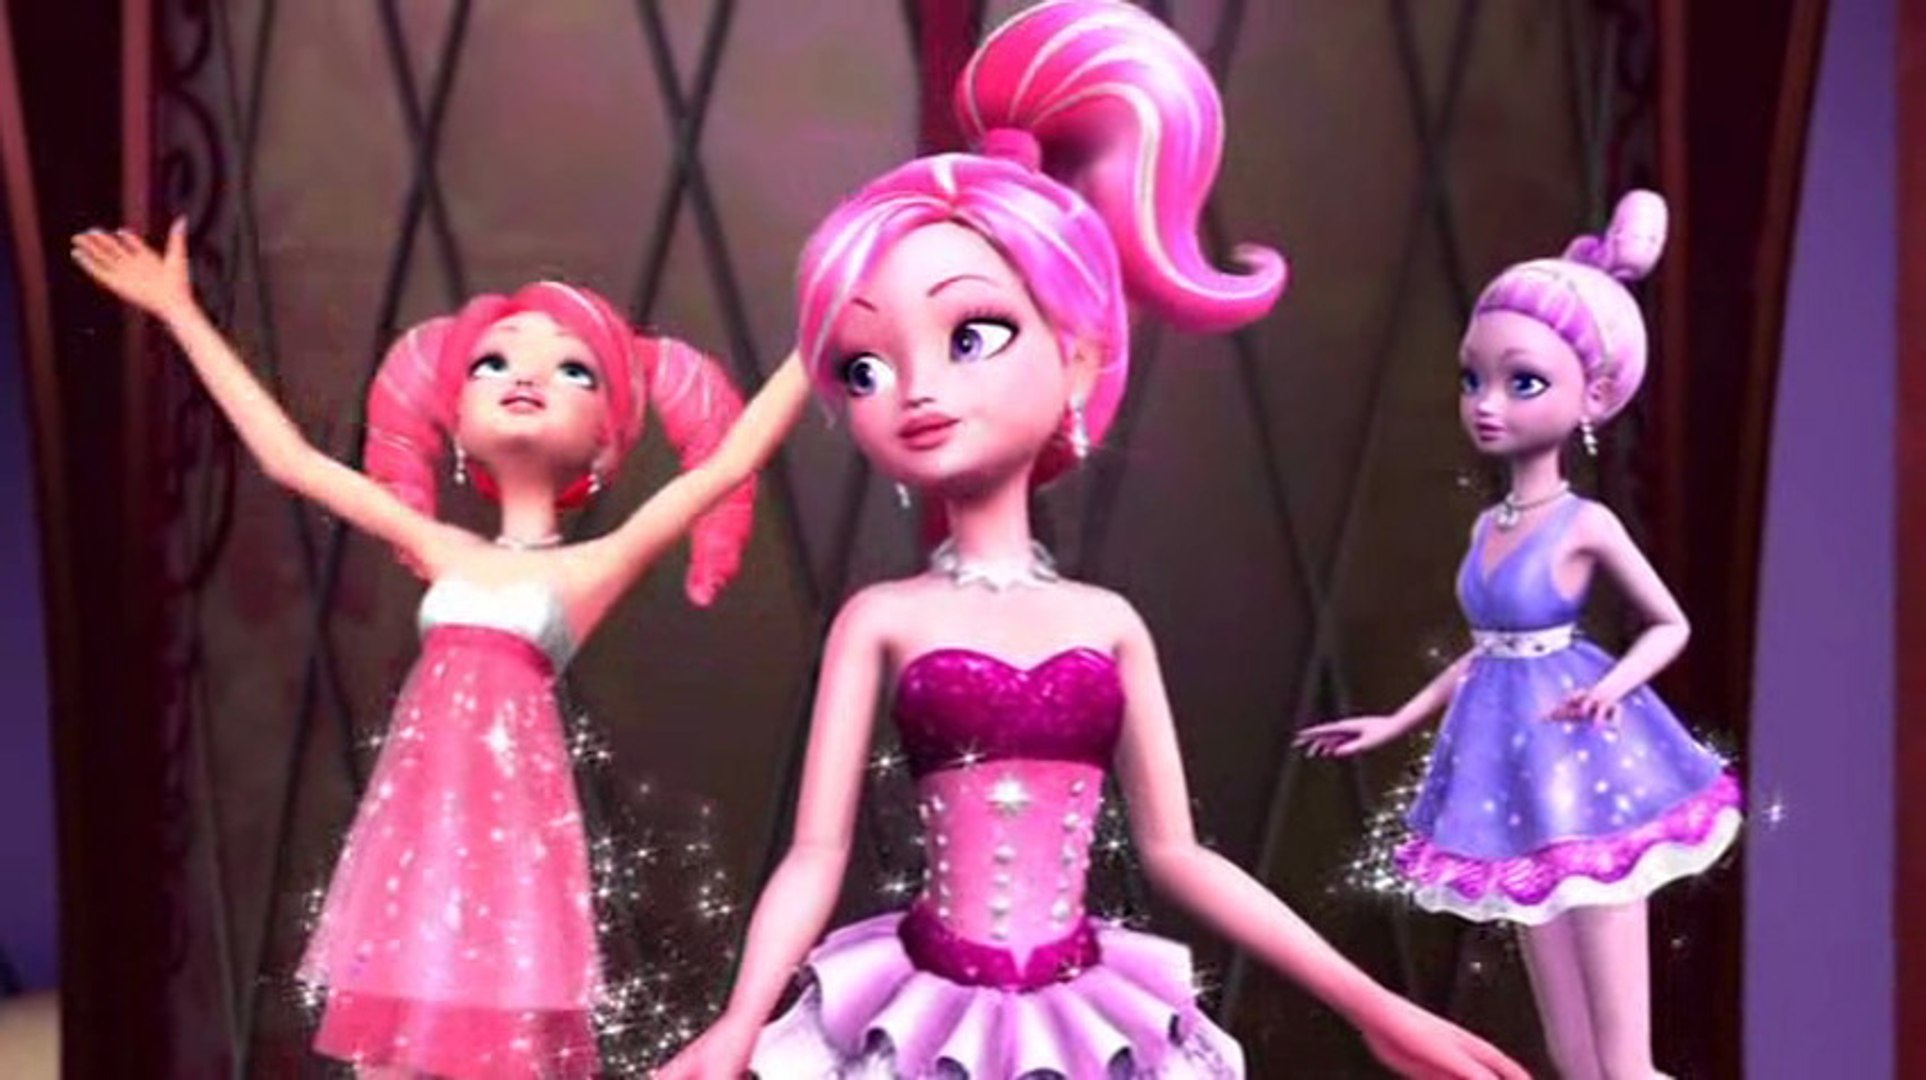 Barbie A Fashion Fairytale Complite Video Part Ii Video Dailymotion